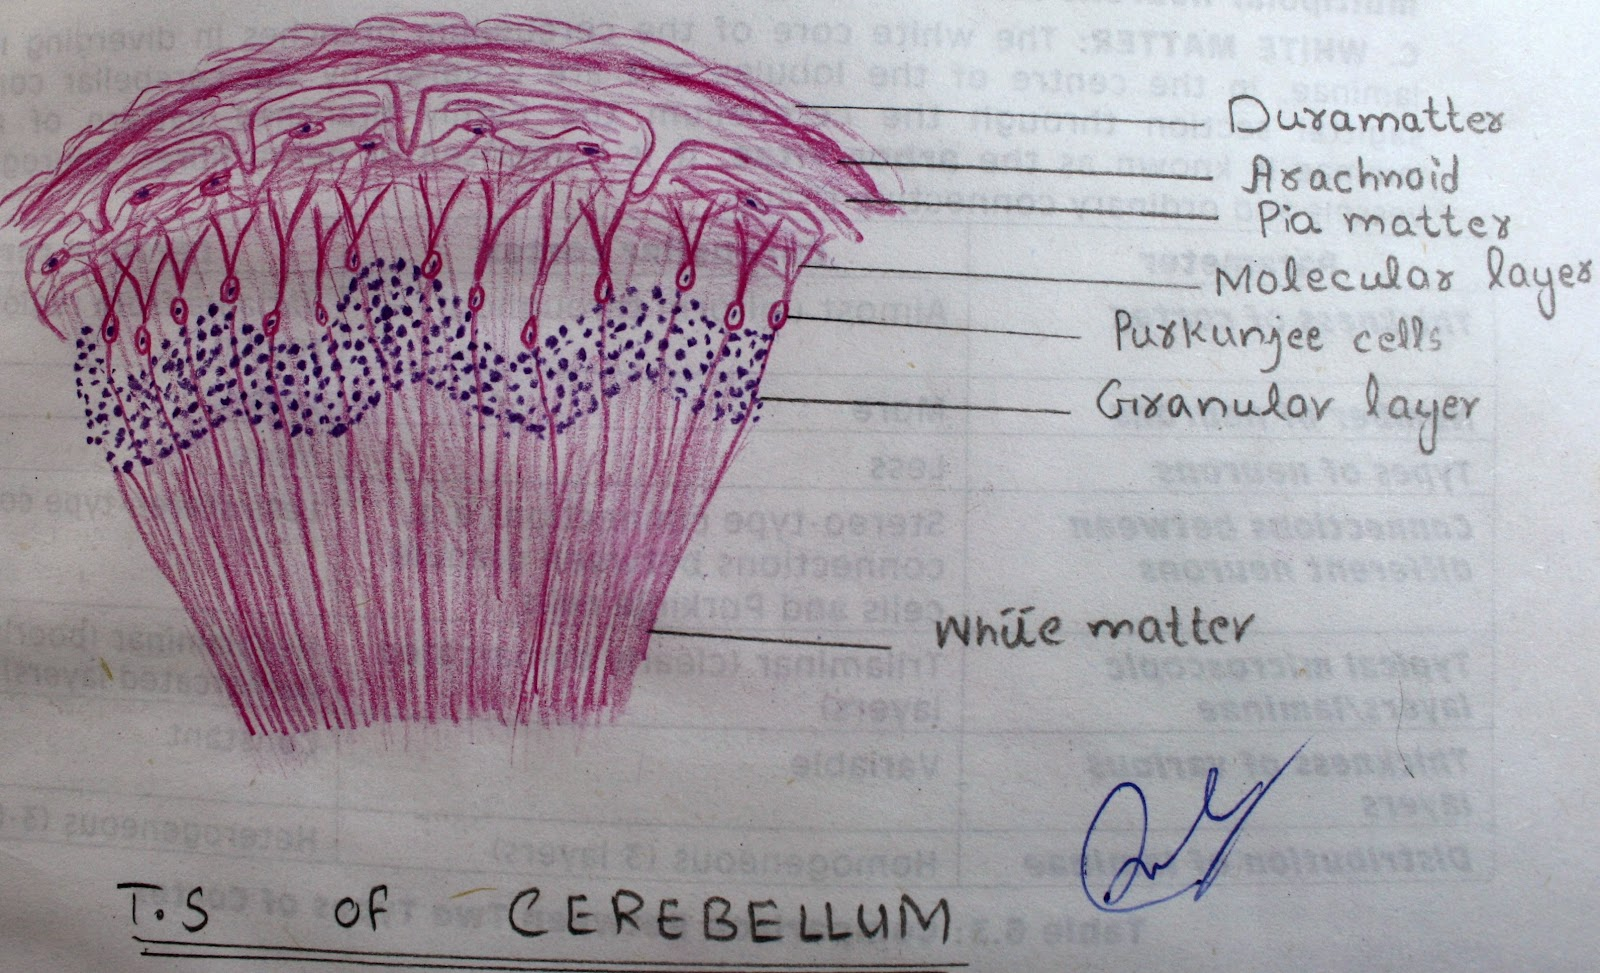 [T.S%2520of%2520cerebellum%2520high%2520resolution%2520histology%2520diagram%255B3%255D.jpg]